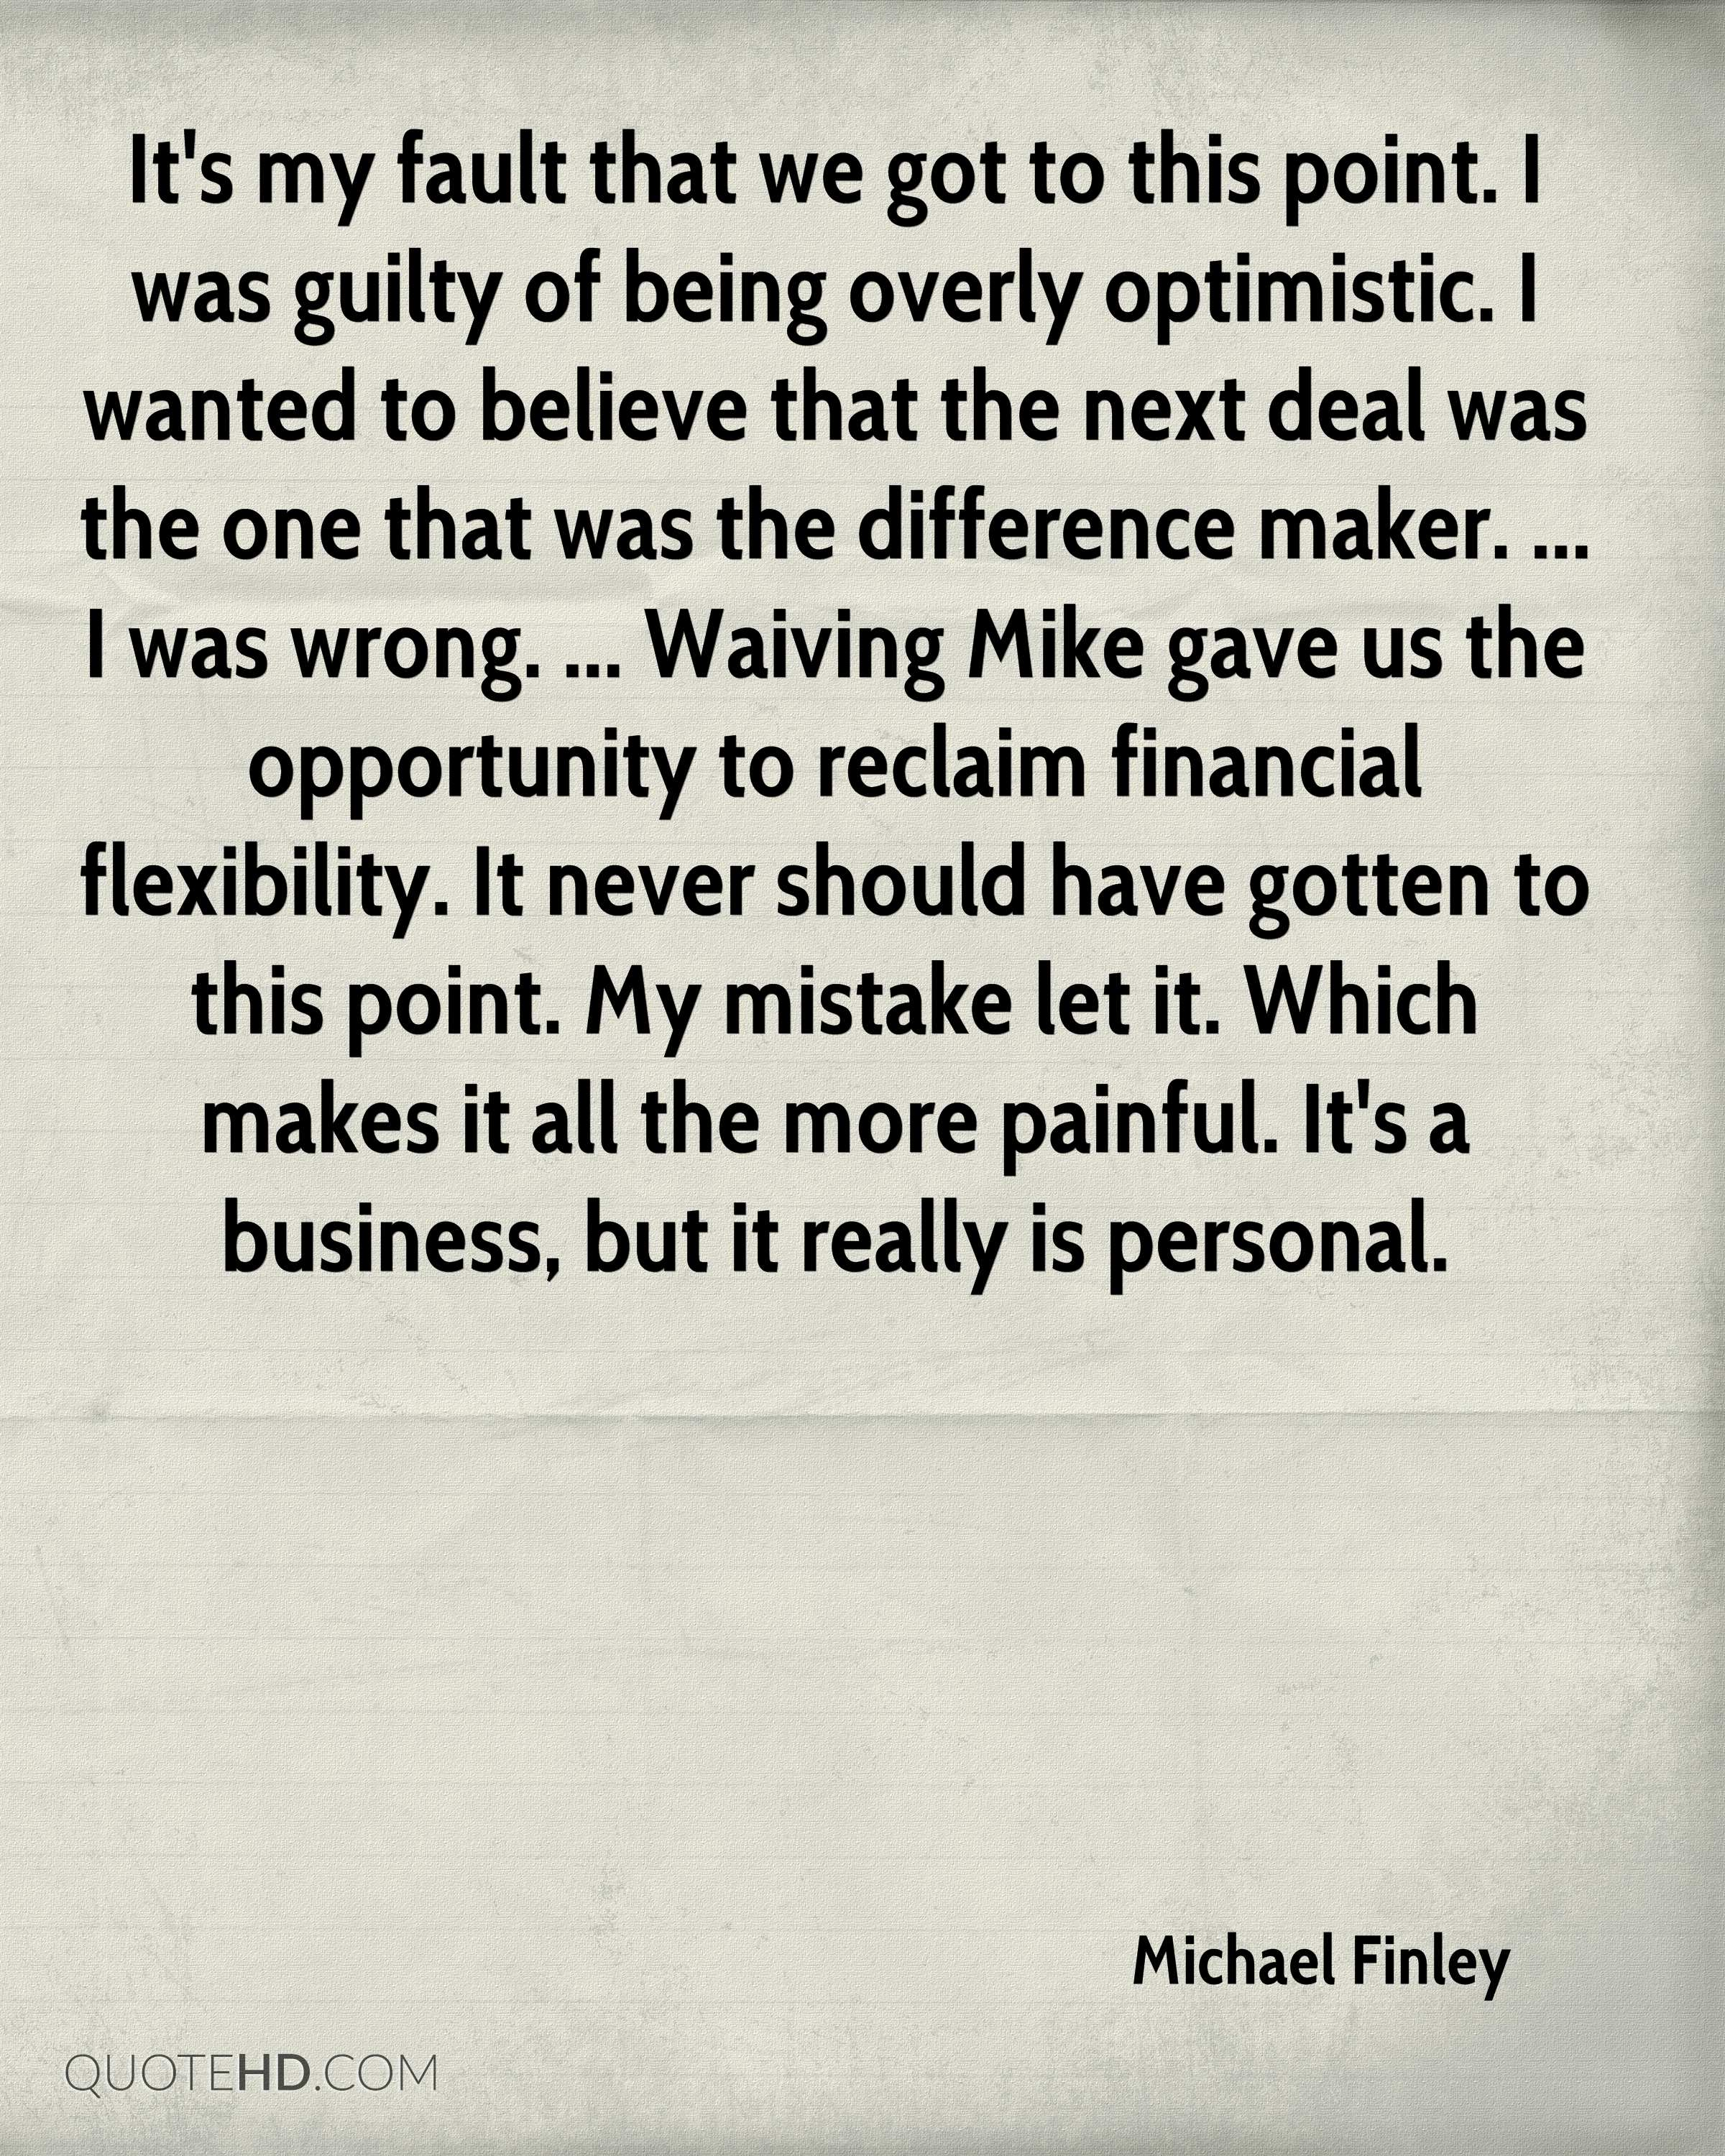 It's my fault that we got to this point. I was guilty of being overly optimistic. I wanted to believe that the next deal was the one that was the difference maker. ... I was wrong. ... Waiving Mike gave us the opportunity to reclaim financial flexibility. It never should have gotten to this point. My mistake let it. Which makes it all the more painful. It's a business, but it really is personal.